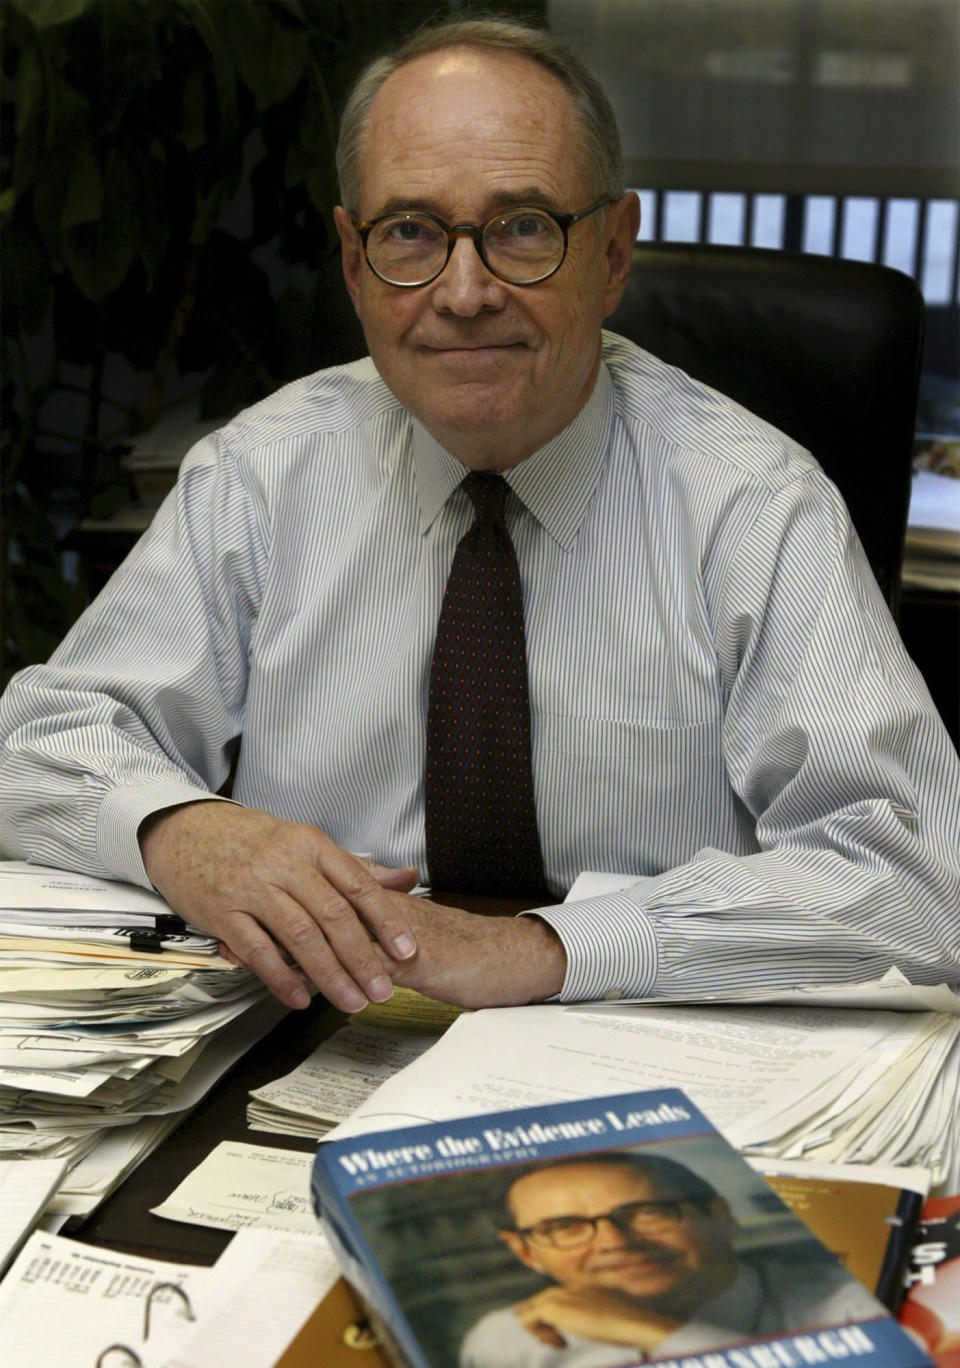 FILE - In this Sept. 30, 2003 file photo, former Pennsylvania Gov. Dick Thornburgh sits in his Washington office. Thornburgh died Thursday, Dec. 31, 2020 at a retirement community facility outside Pittsburgh, his son David said. (AP Photo/ Evan Vucci, File)